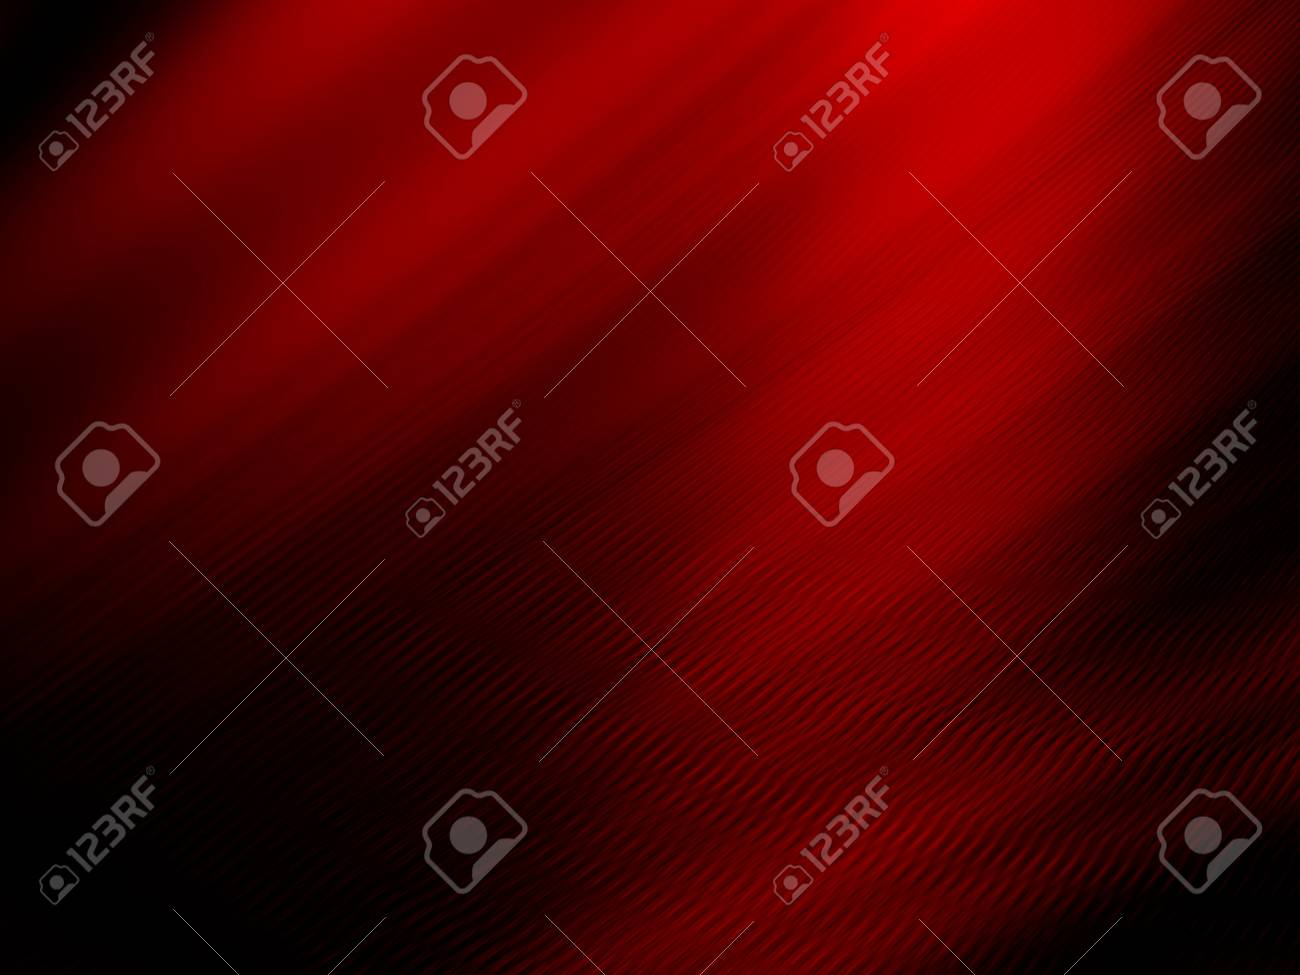 Red Love Wallpaper Card Abstract Background Stock Photo